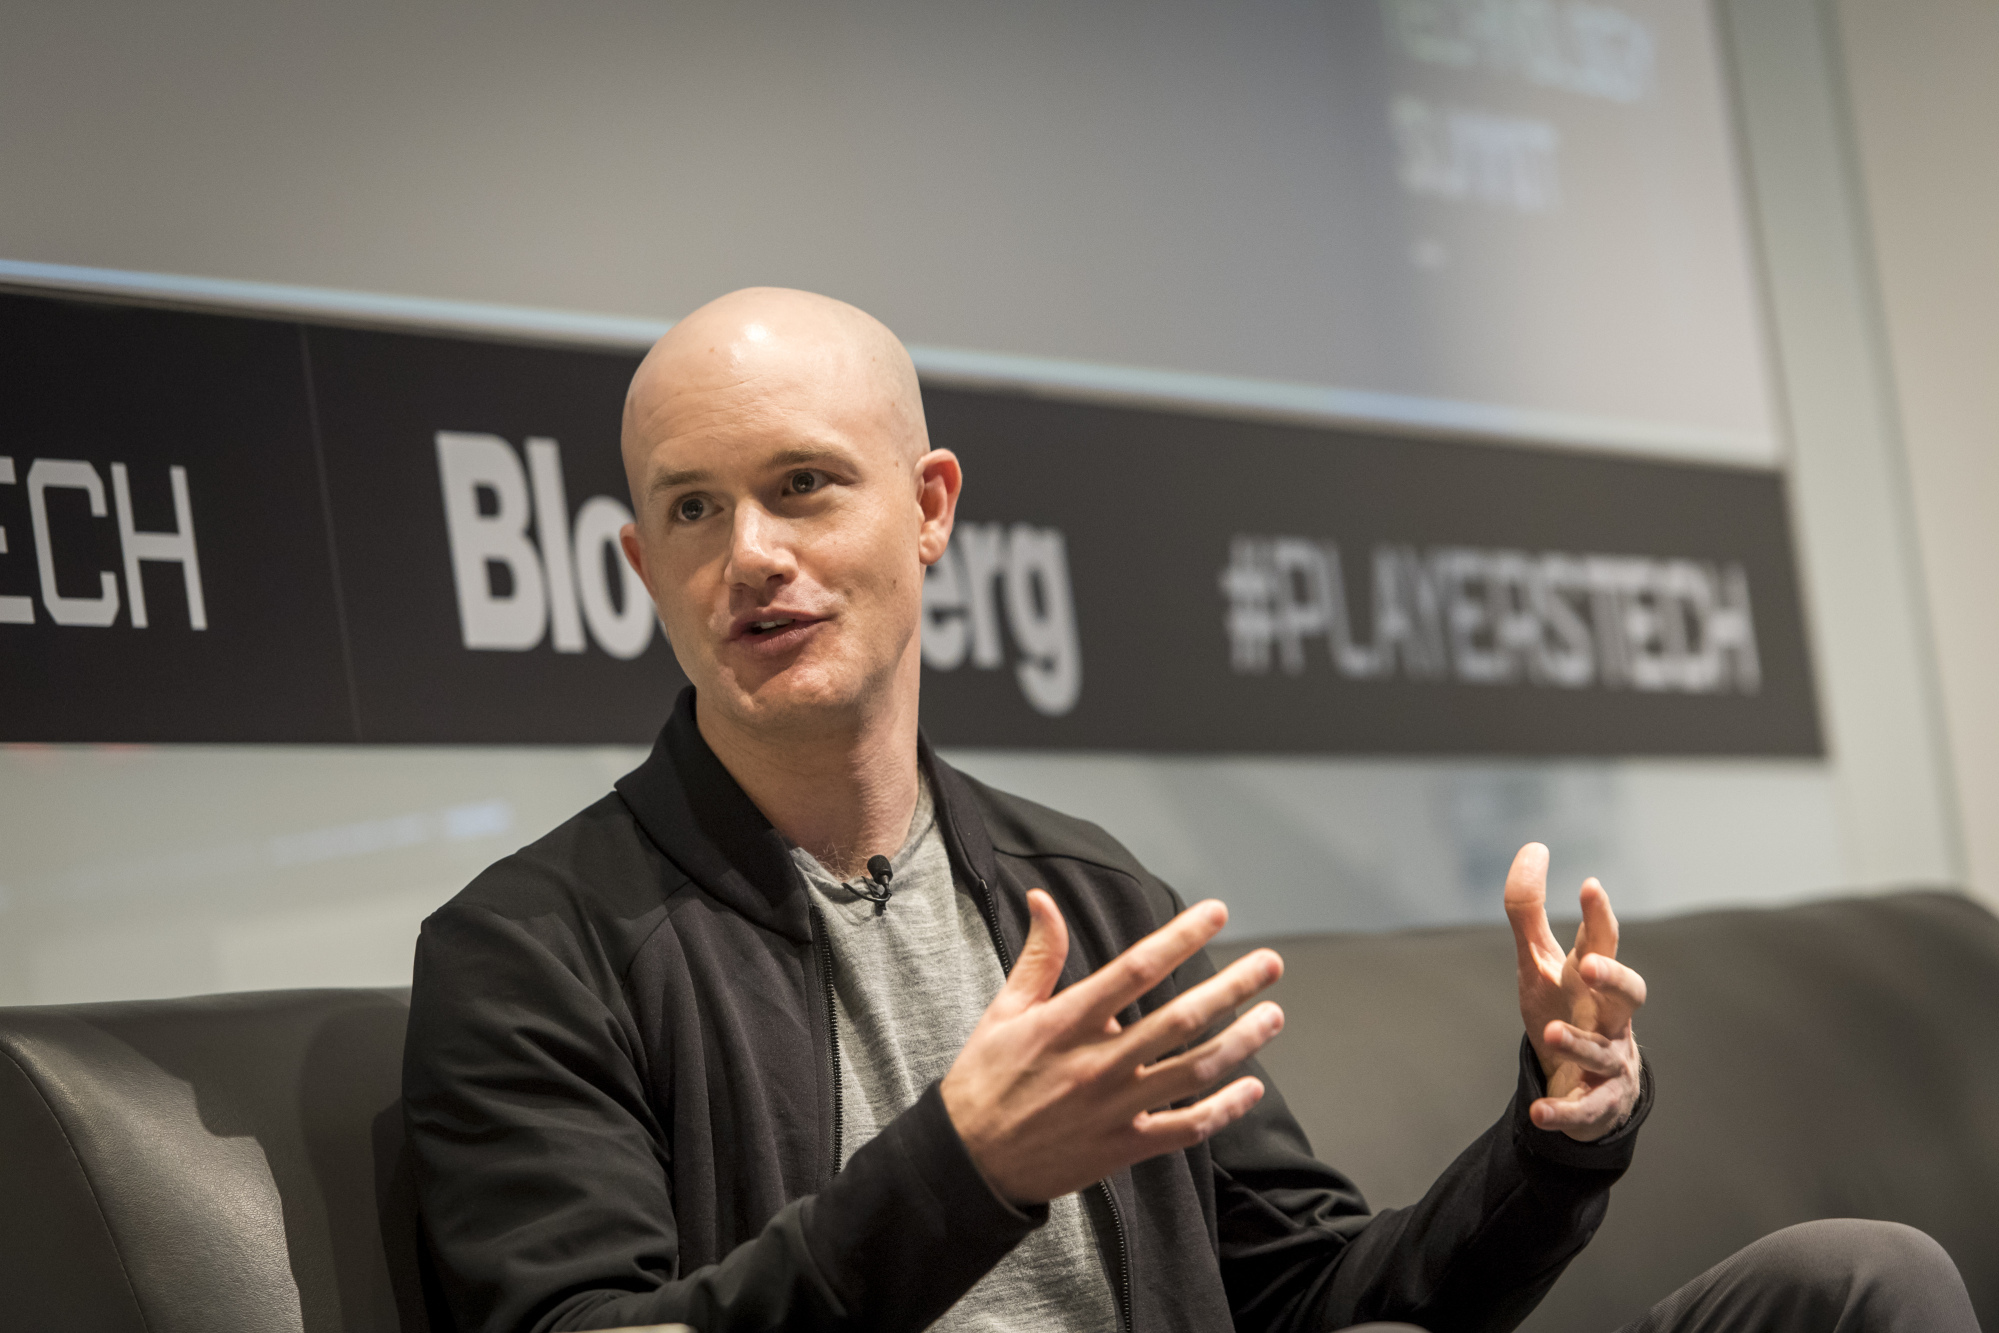 Key Speakers At The Bloomberg Players Technology Summit